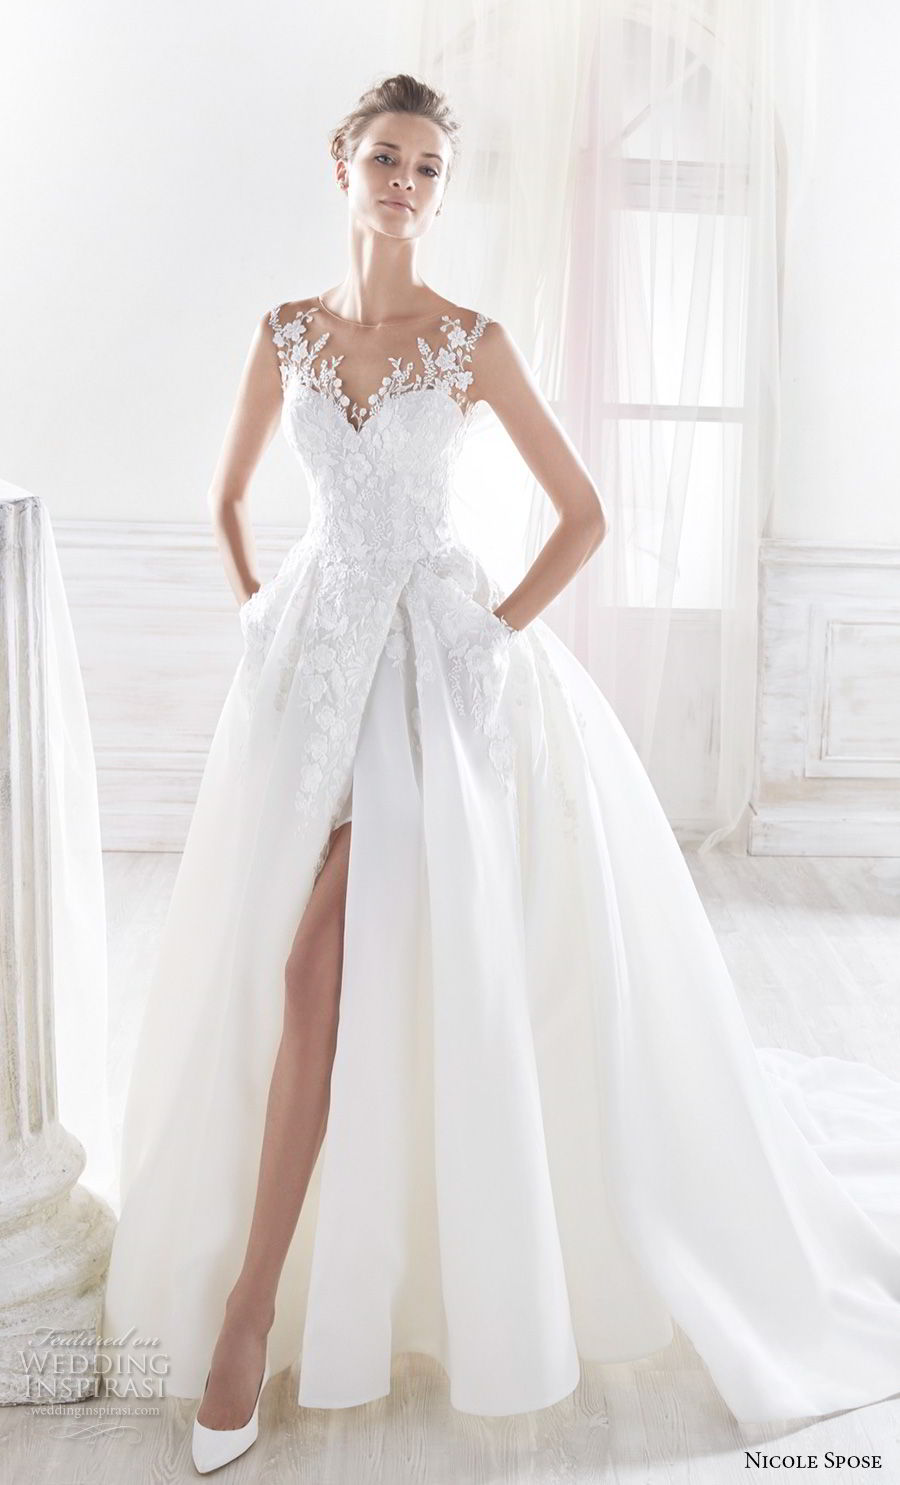 nicole spose 2018 bridal sleeveless sheer jewel sweetheart neckline heavily embellished bodice slit skirt romantic ball gown wedding dress sheer button back chapel train (14) mv